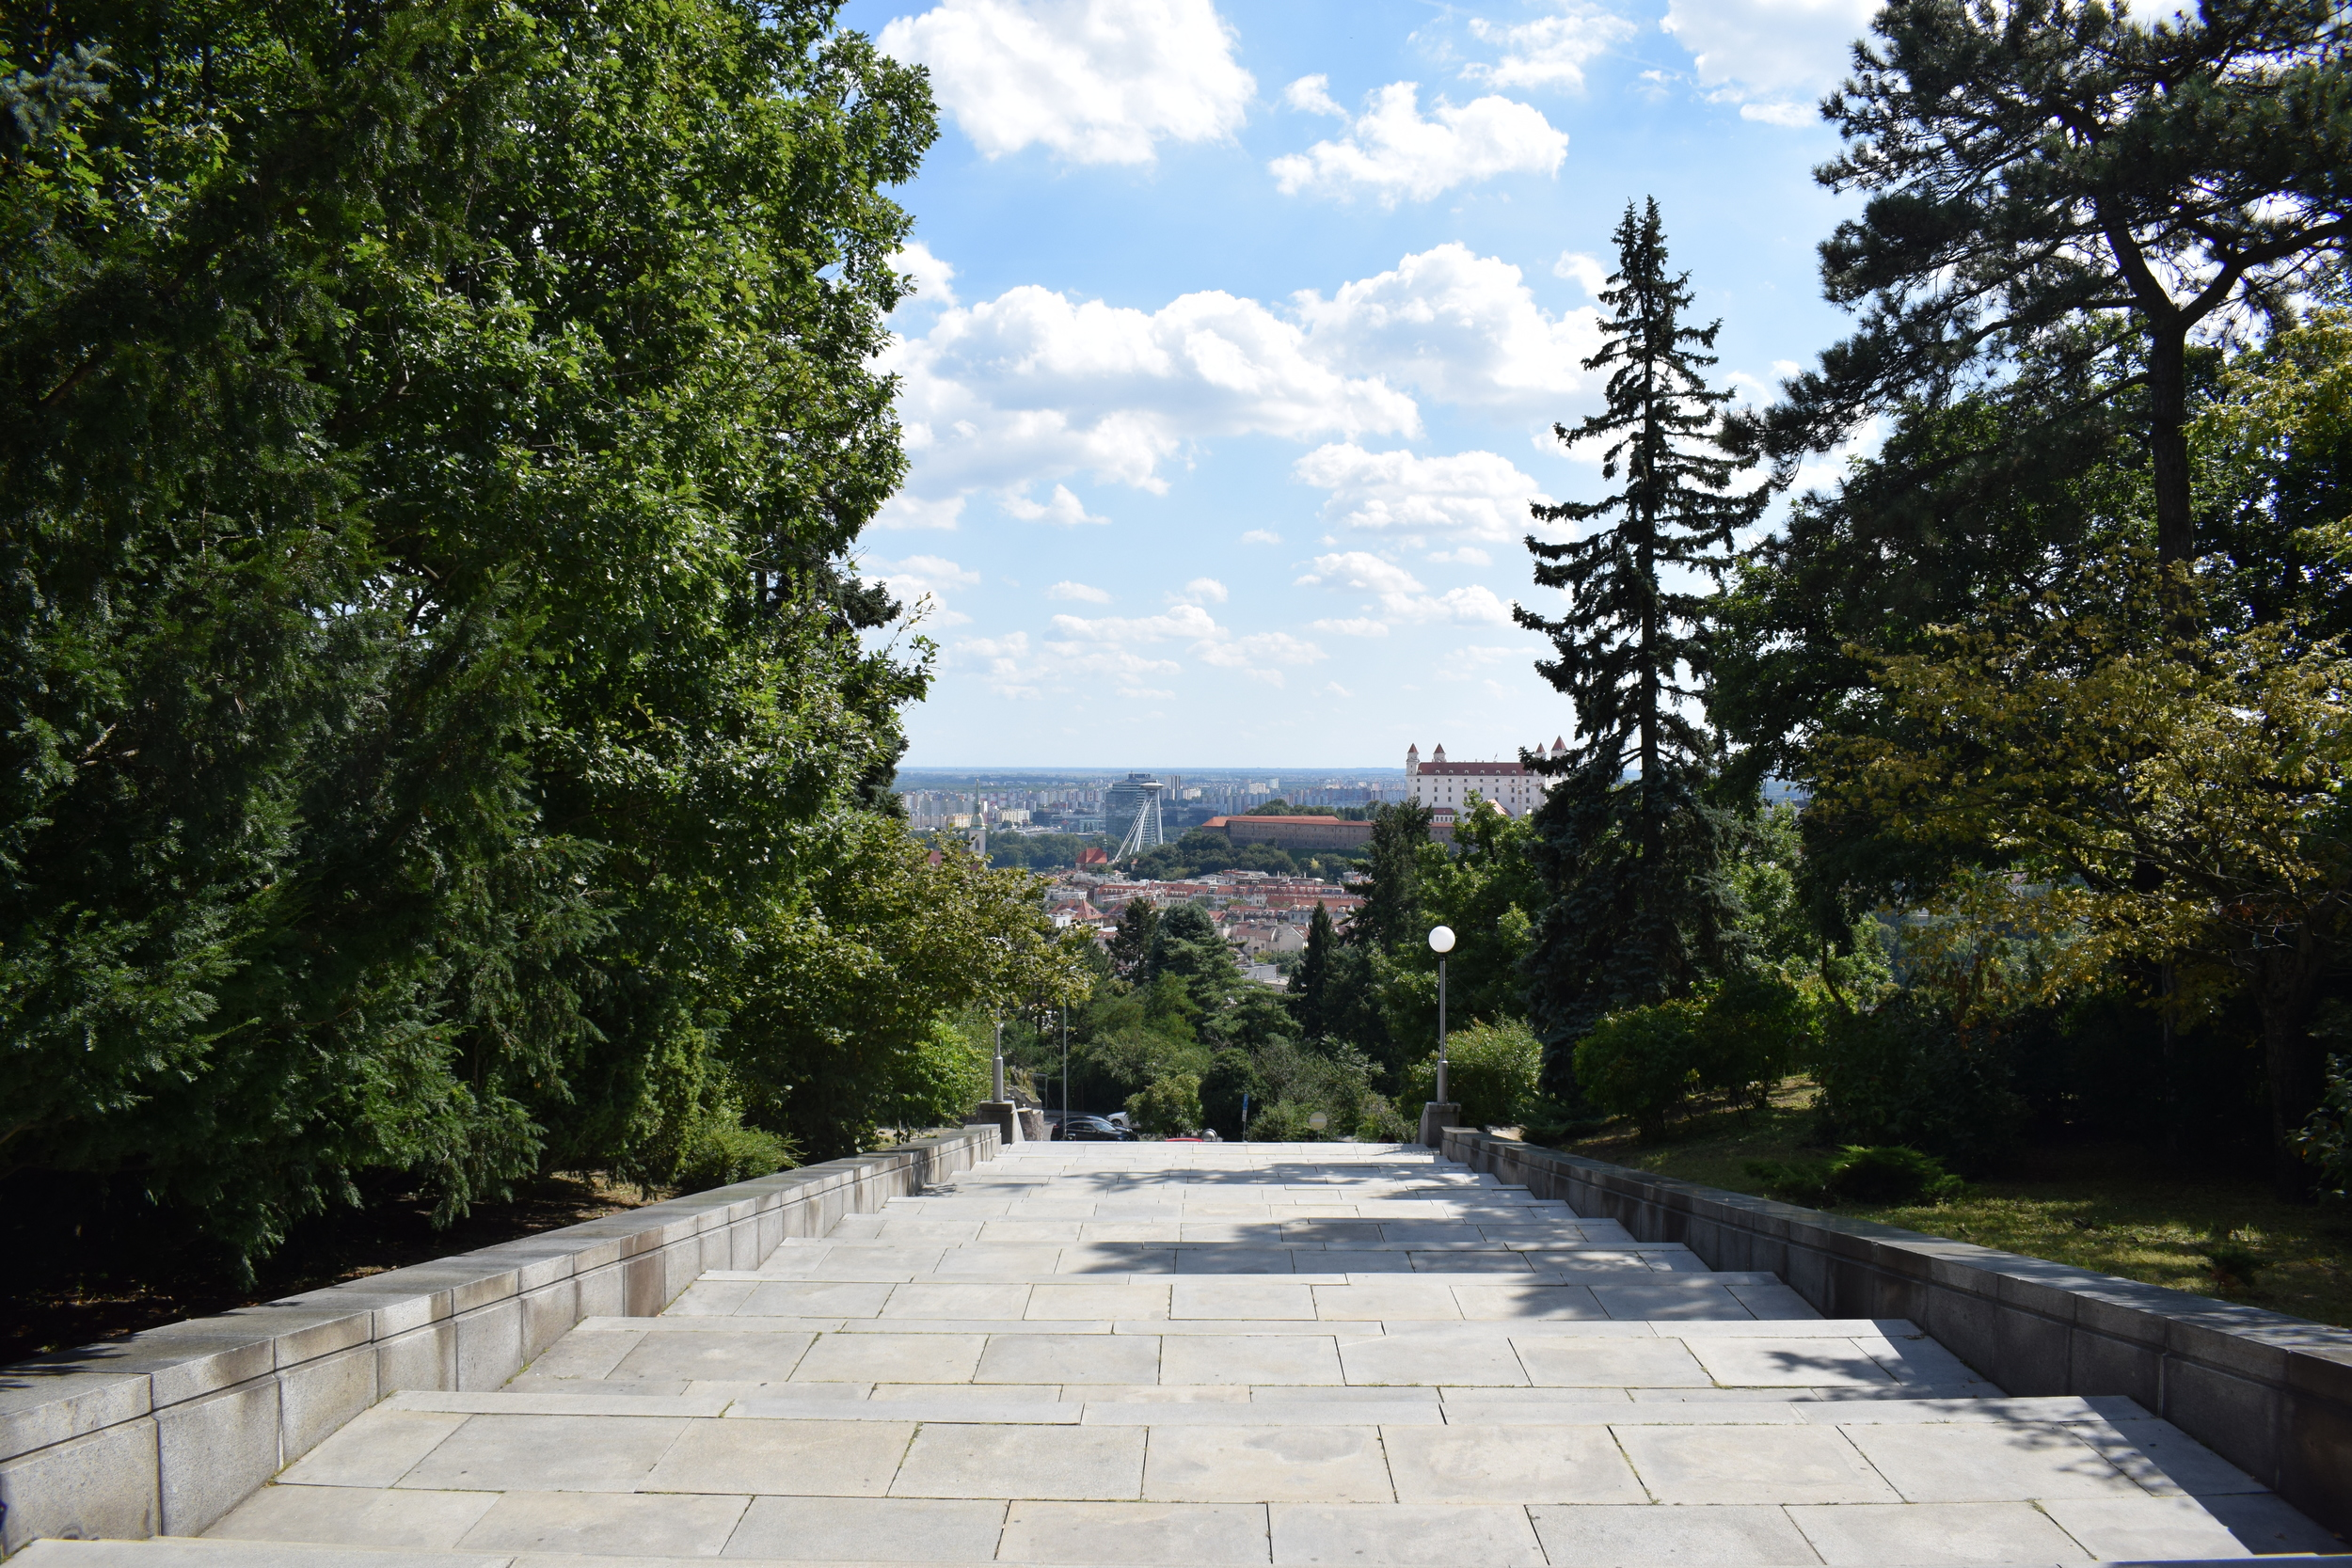 Looking out at the city from the top of Slavin's entrance steps.